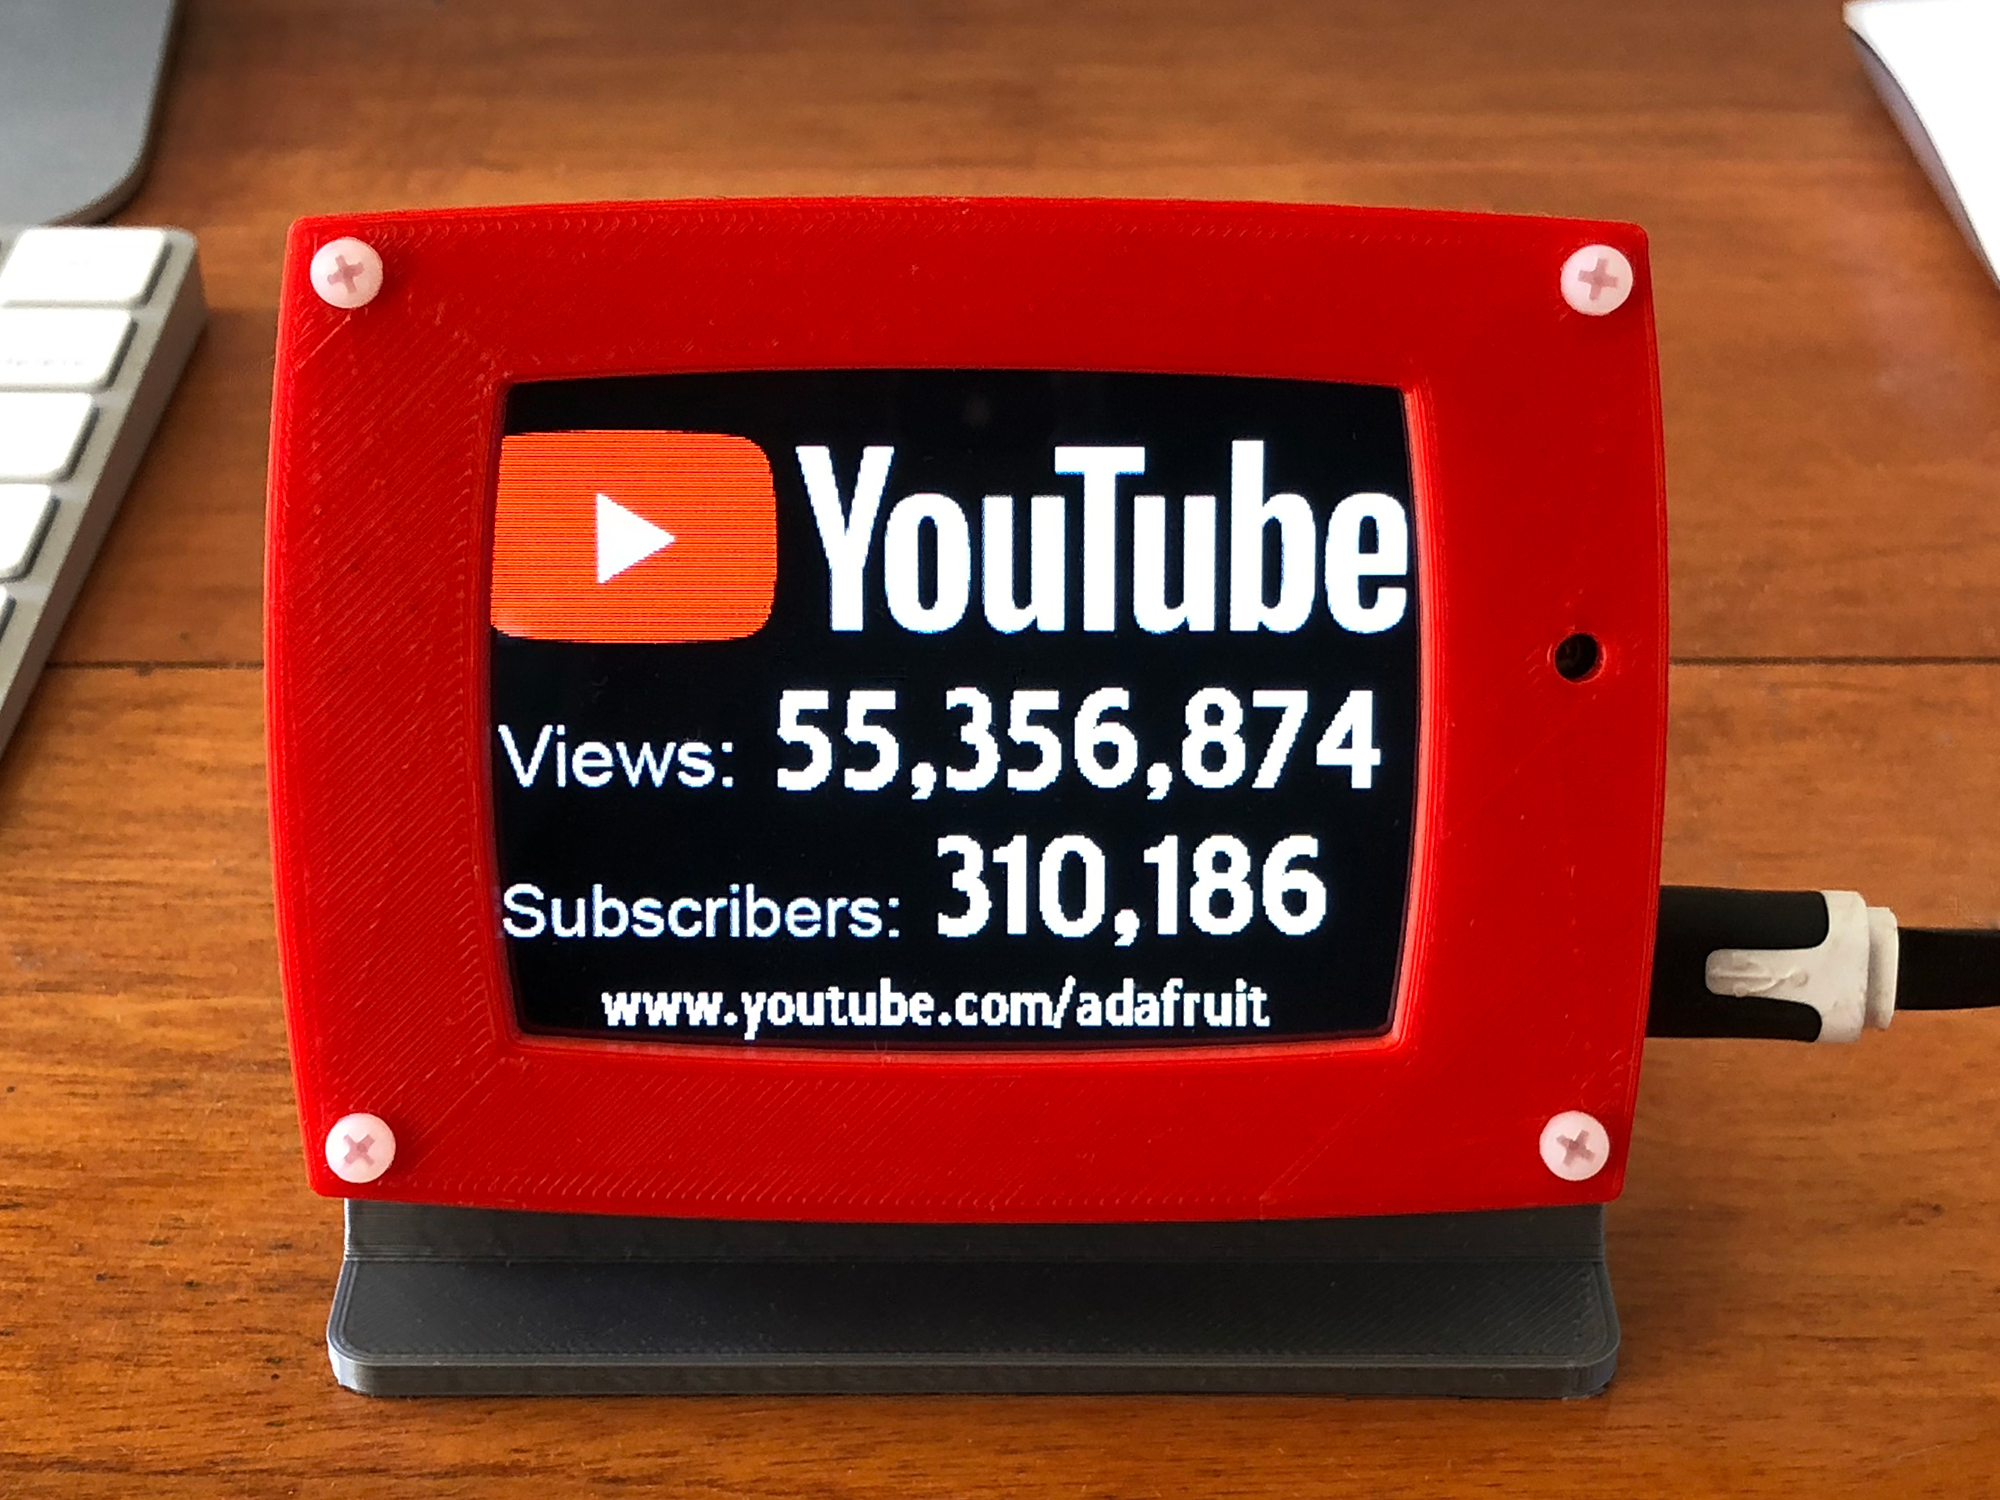 internet_of_things___iot_pyportal_youtube_display_bty_2k.jpg